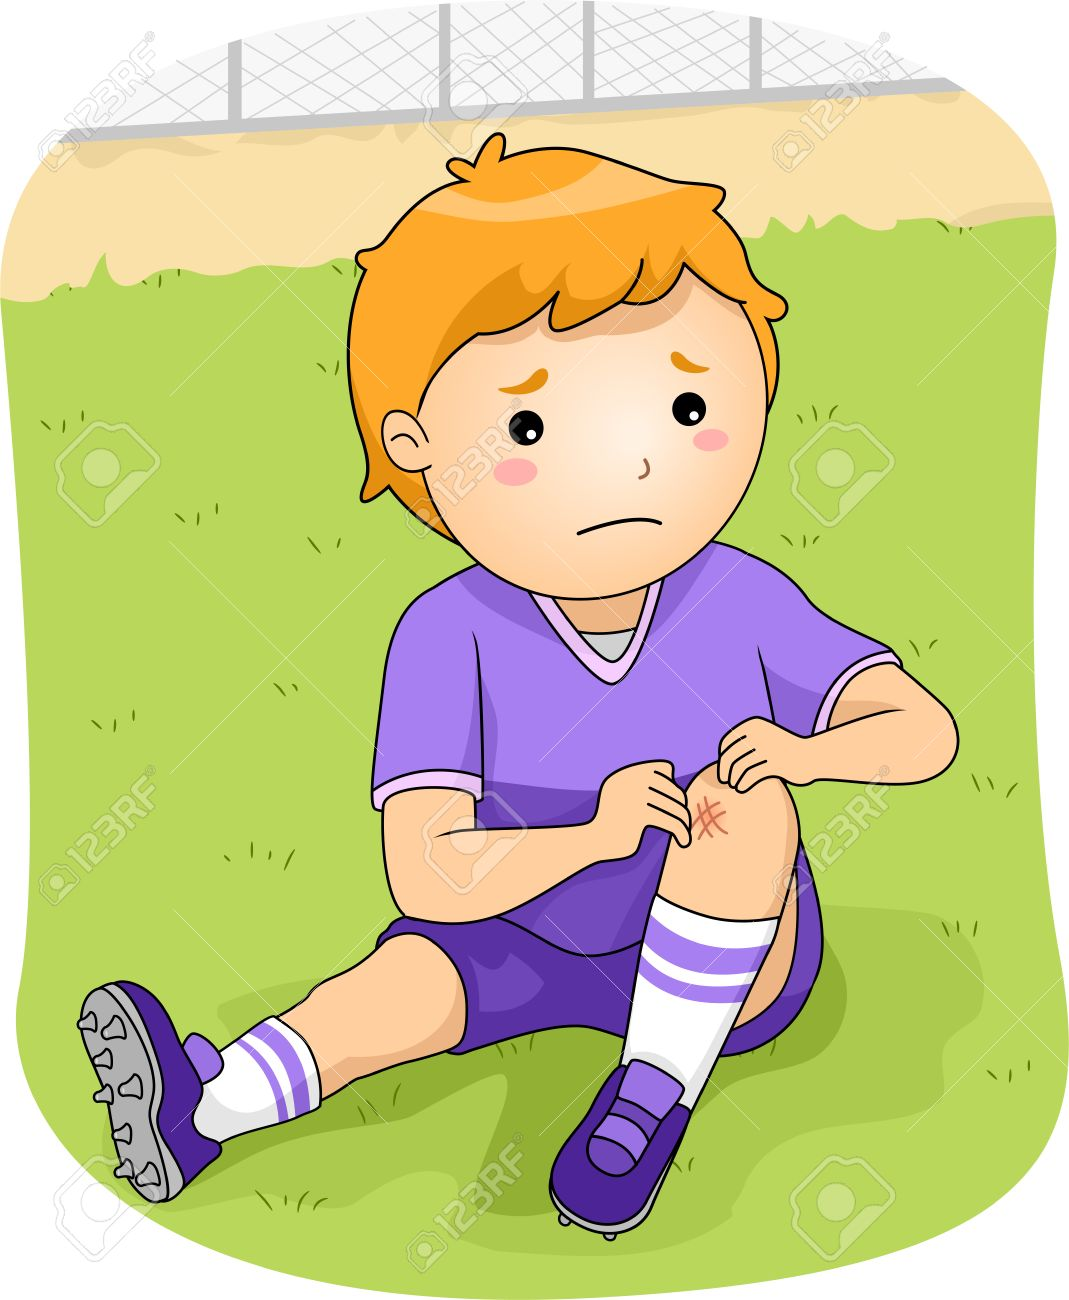 Boy With Knee Pain Clipart & Free Clip Art Images #28786.